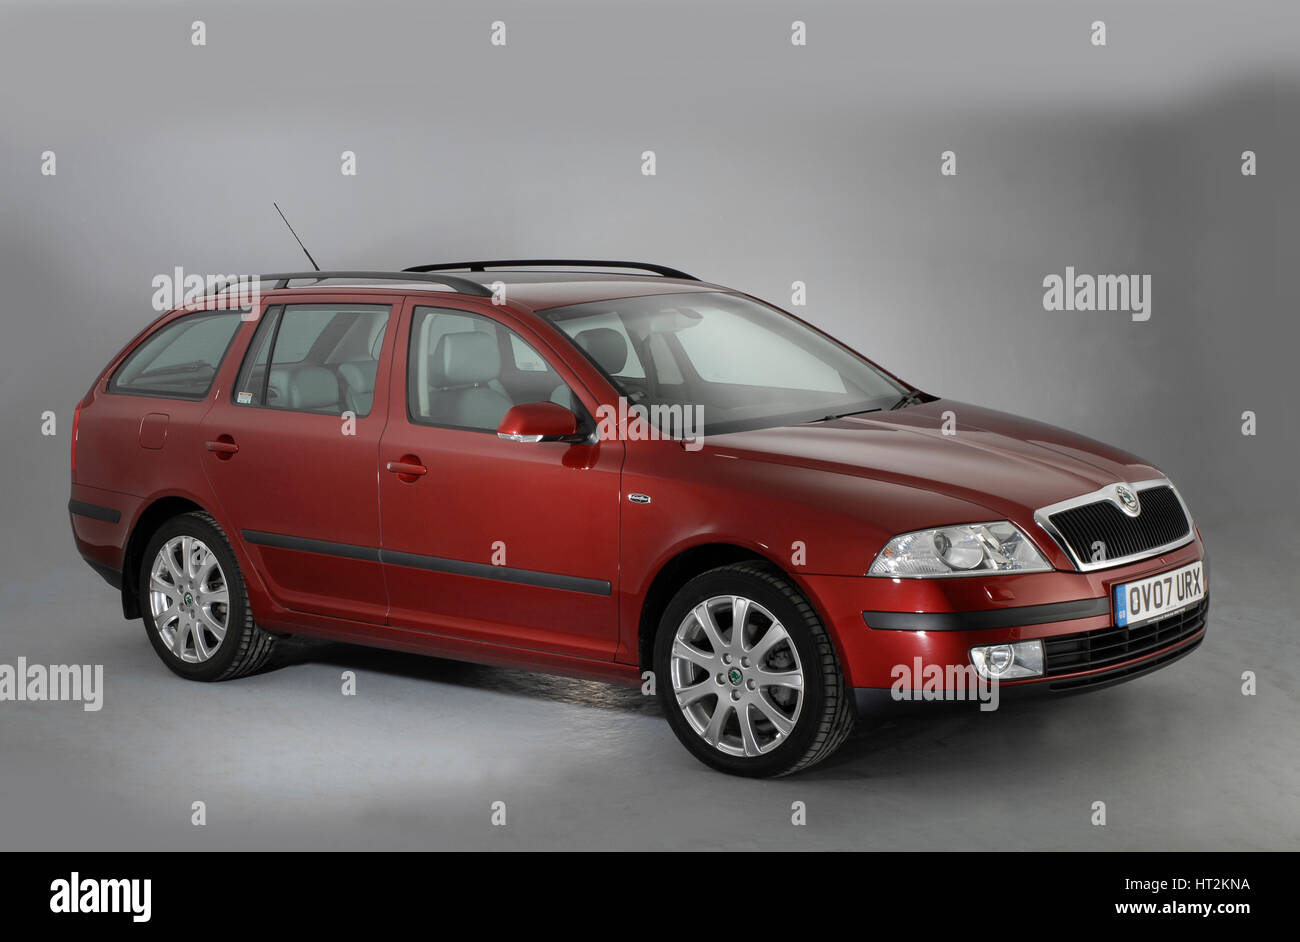 2000s Cars Stock Photos & 2000s Cars Stock Images - Page 2 - Alamy